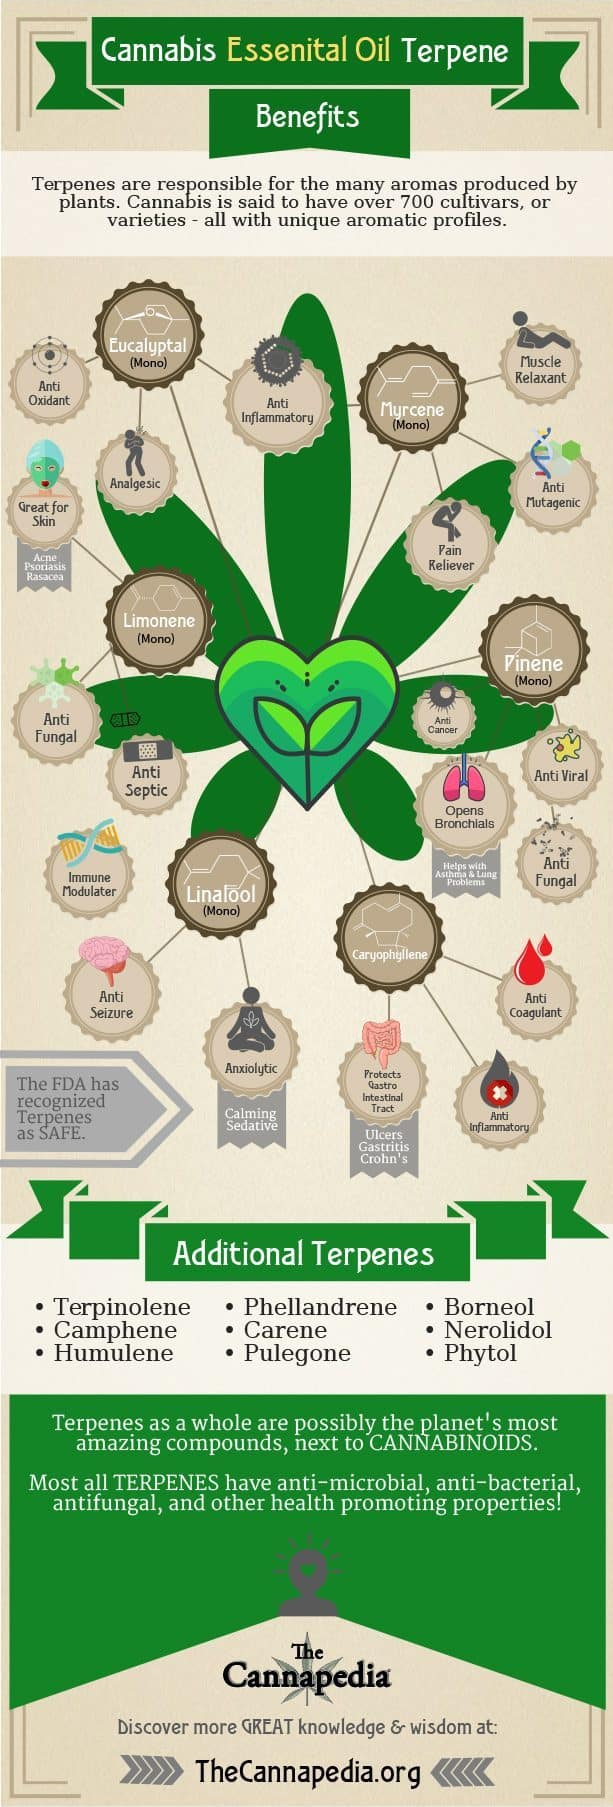 Cannabis Essential Oil Terpenes Infographic